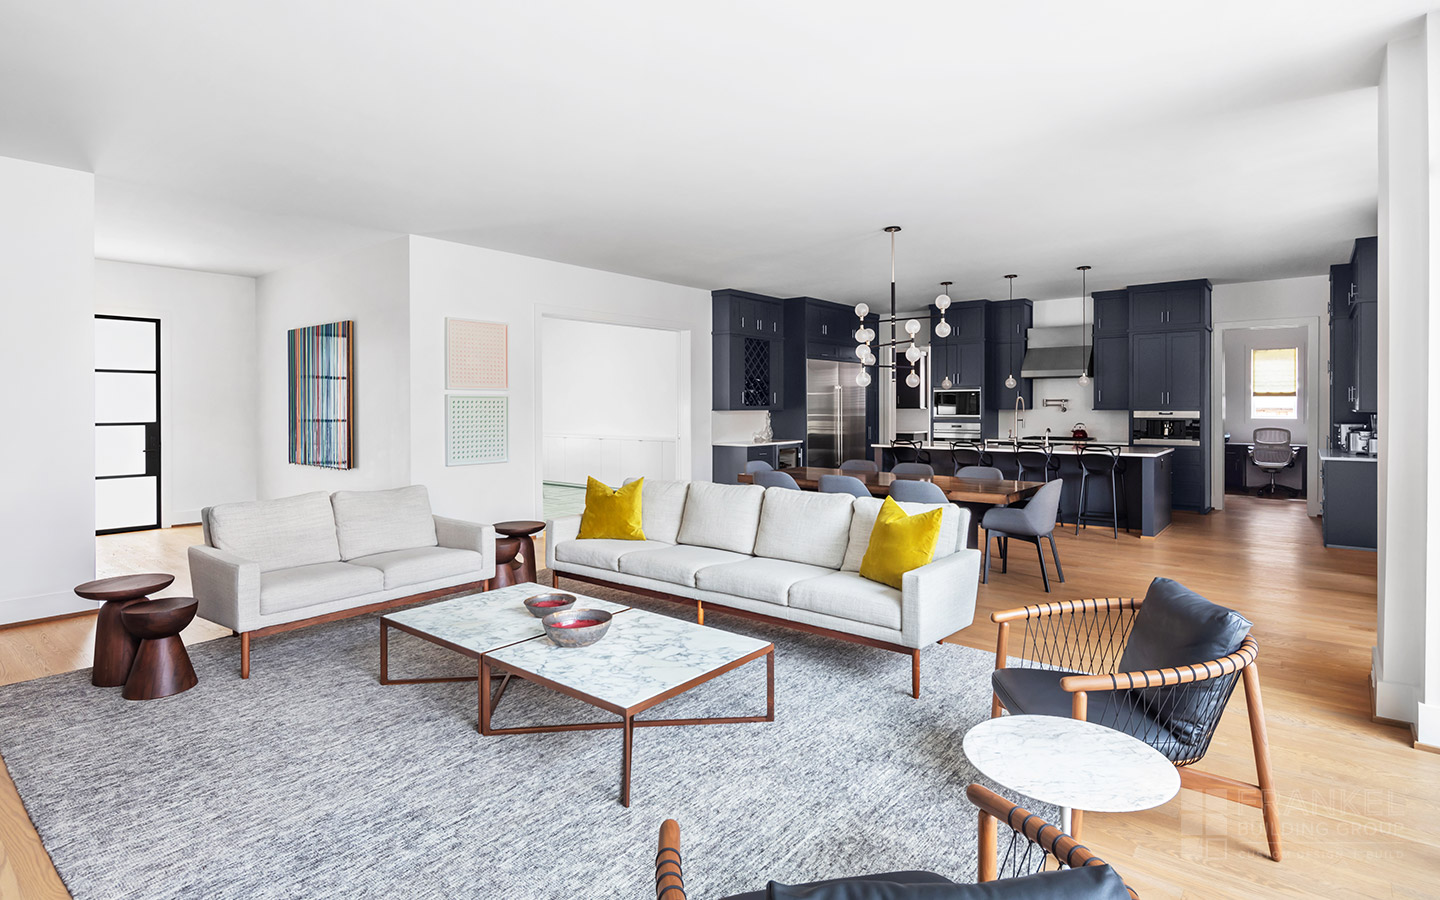 Eclectic Mid-Century Modern living room